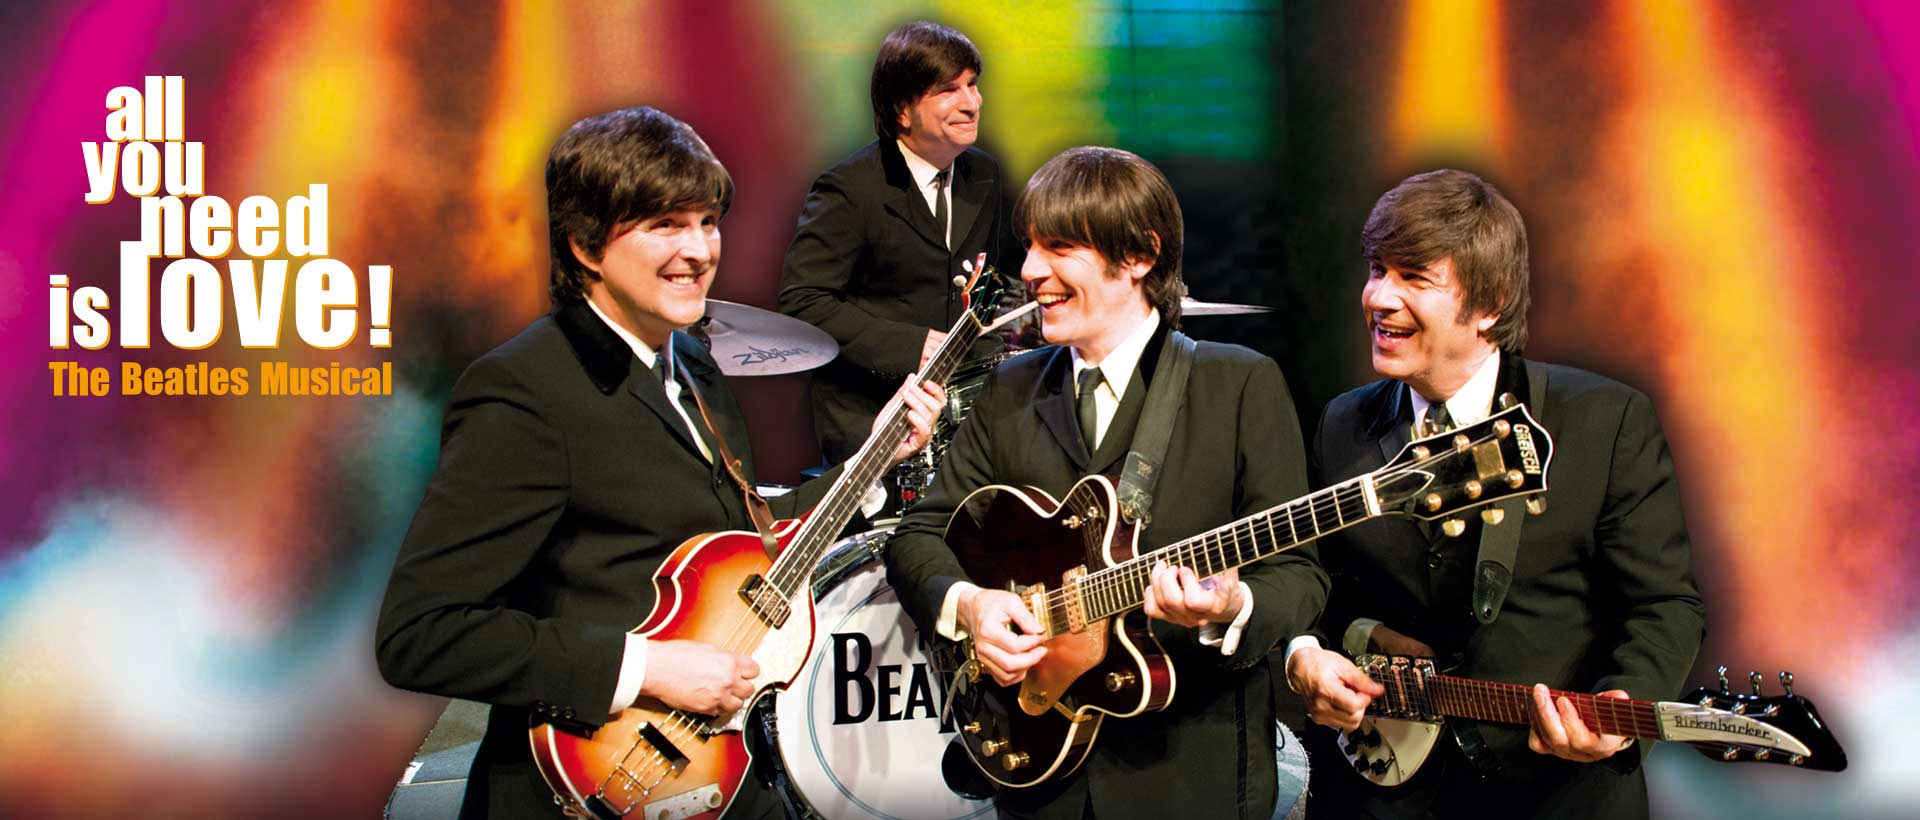 all you need is love! - The Beatles Musical 23.04 - 30.05.2021